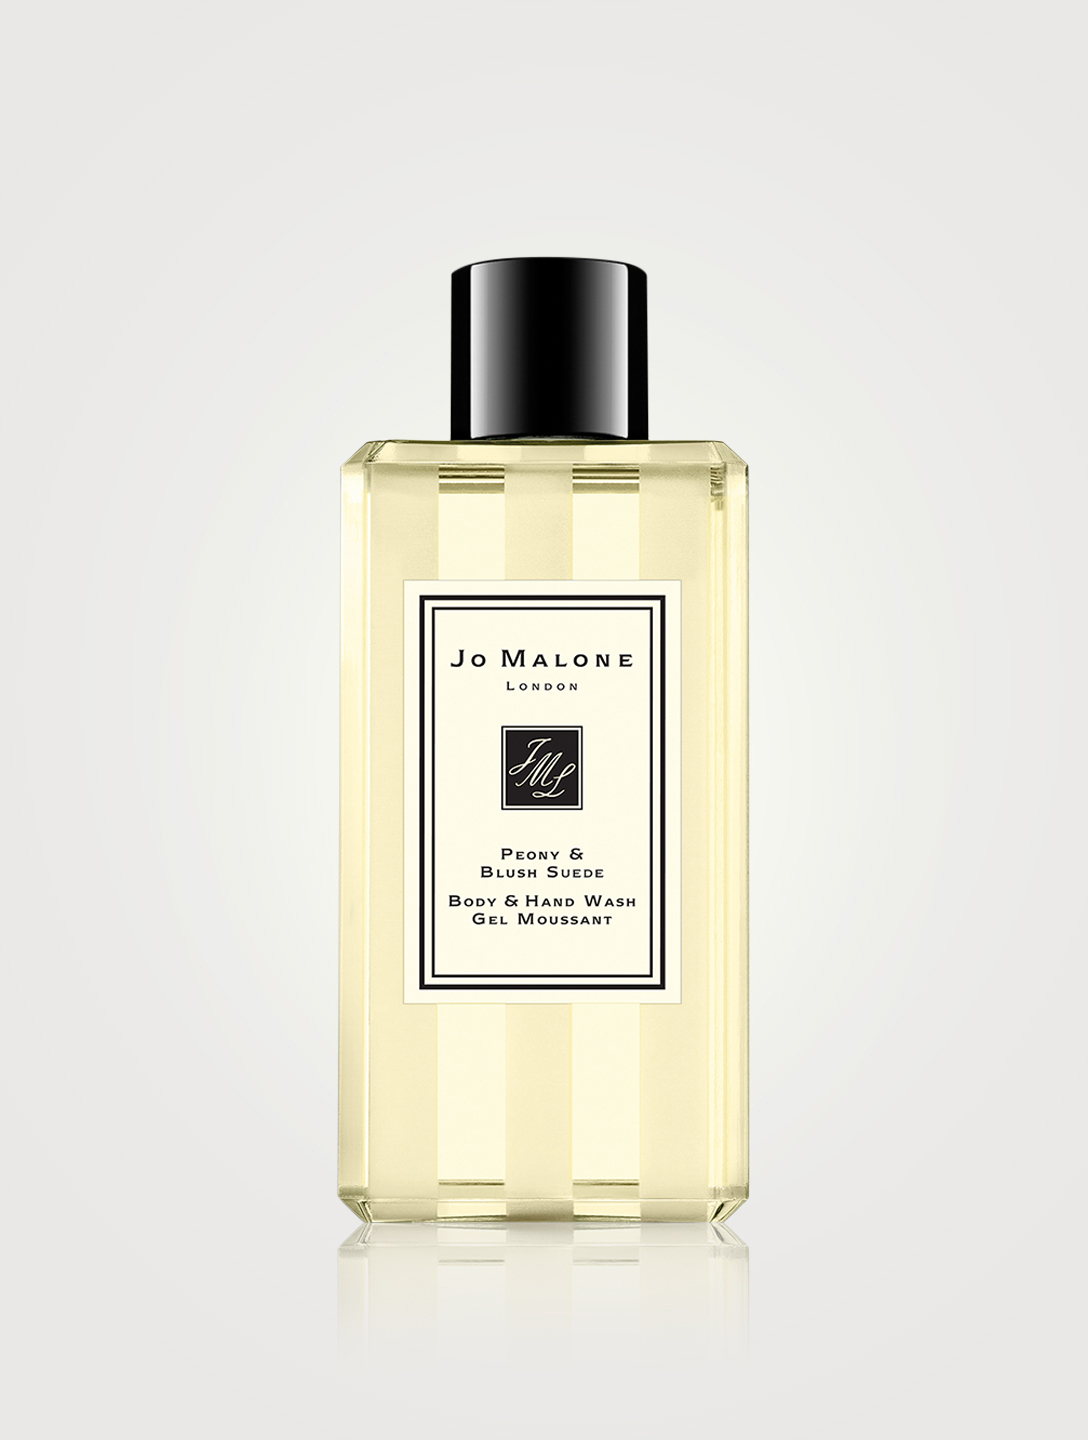 JO MALONE LONDON Peony & Blush Suede Body & Hand Wash Beauty